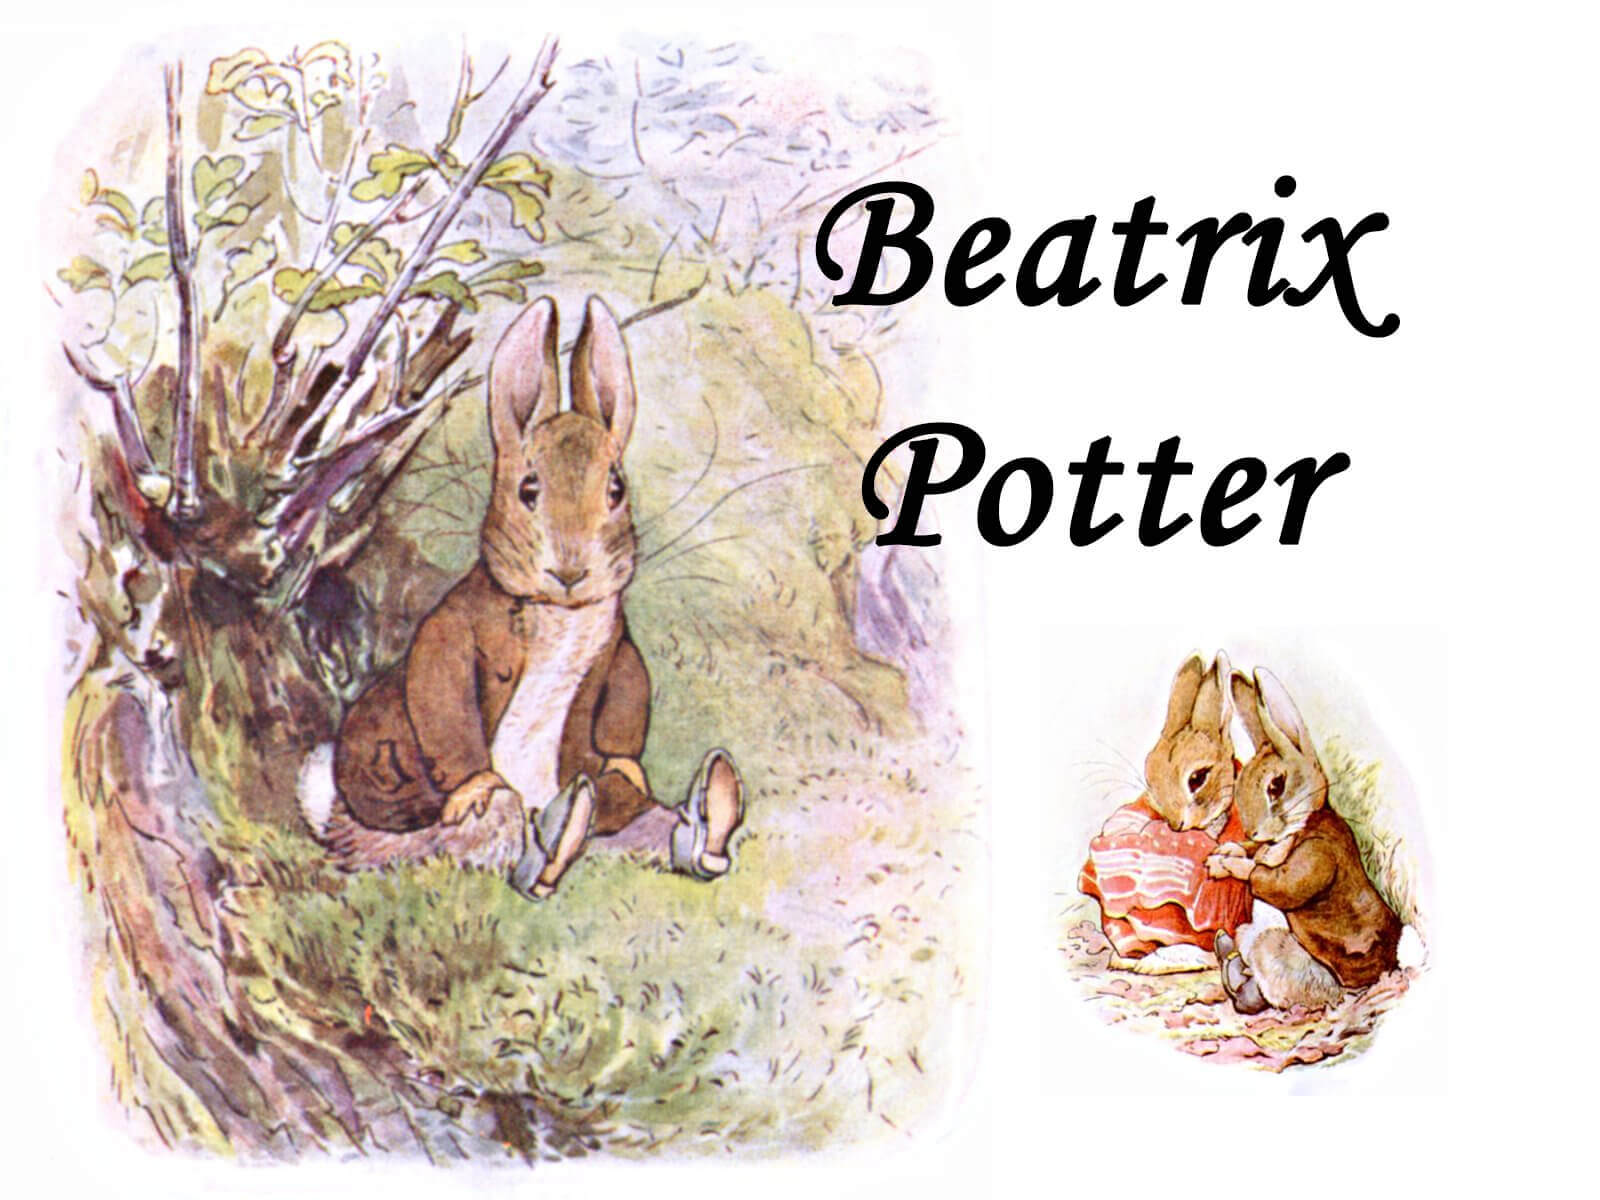 beatrix potter resources surf kids